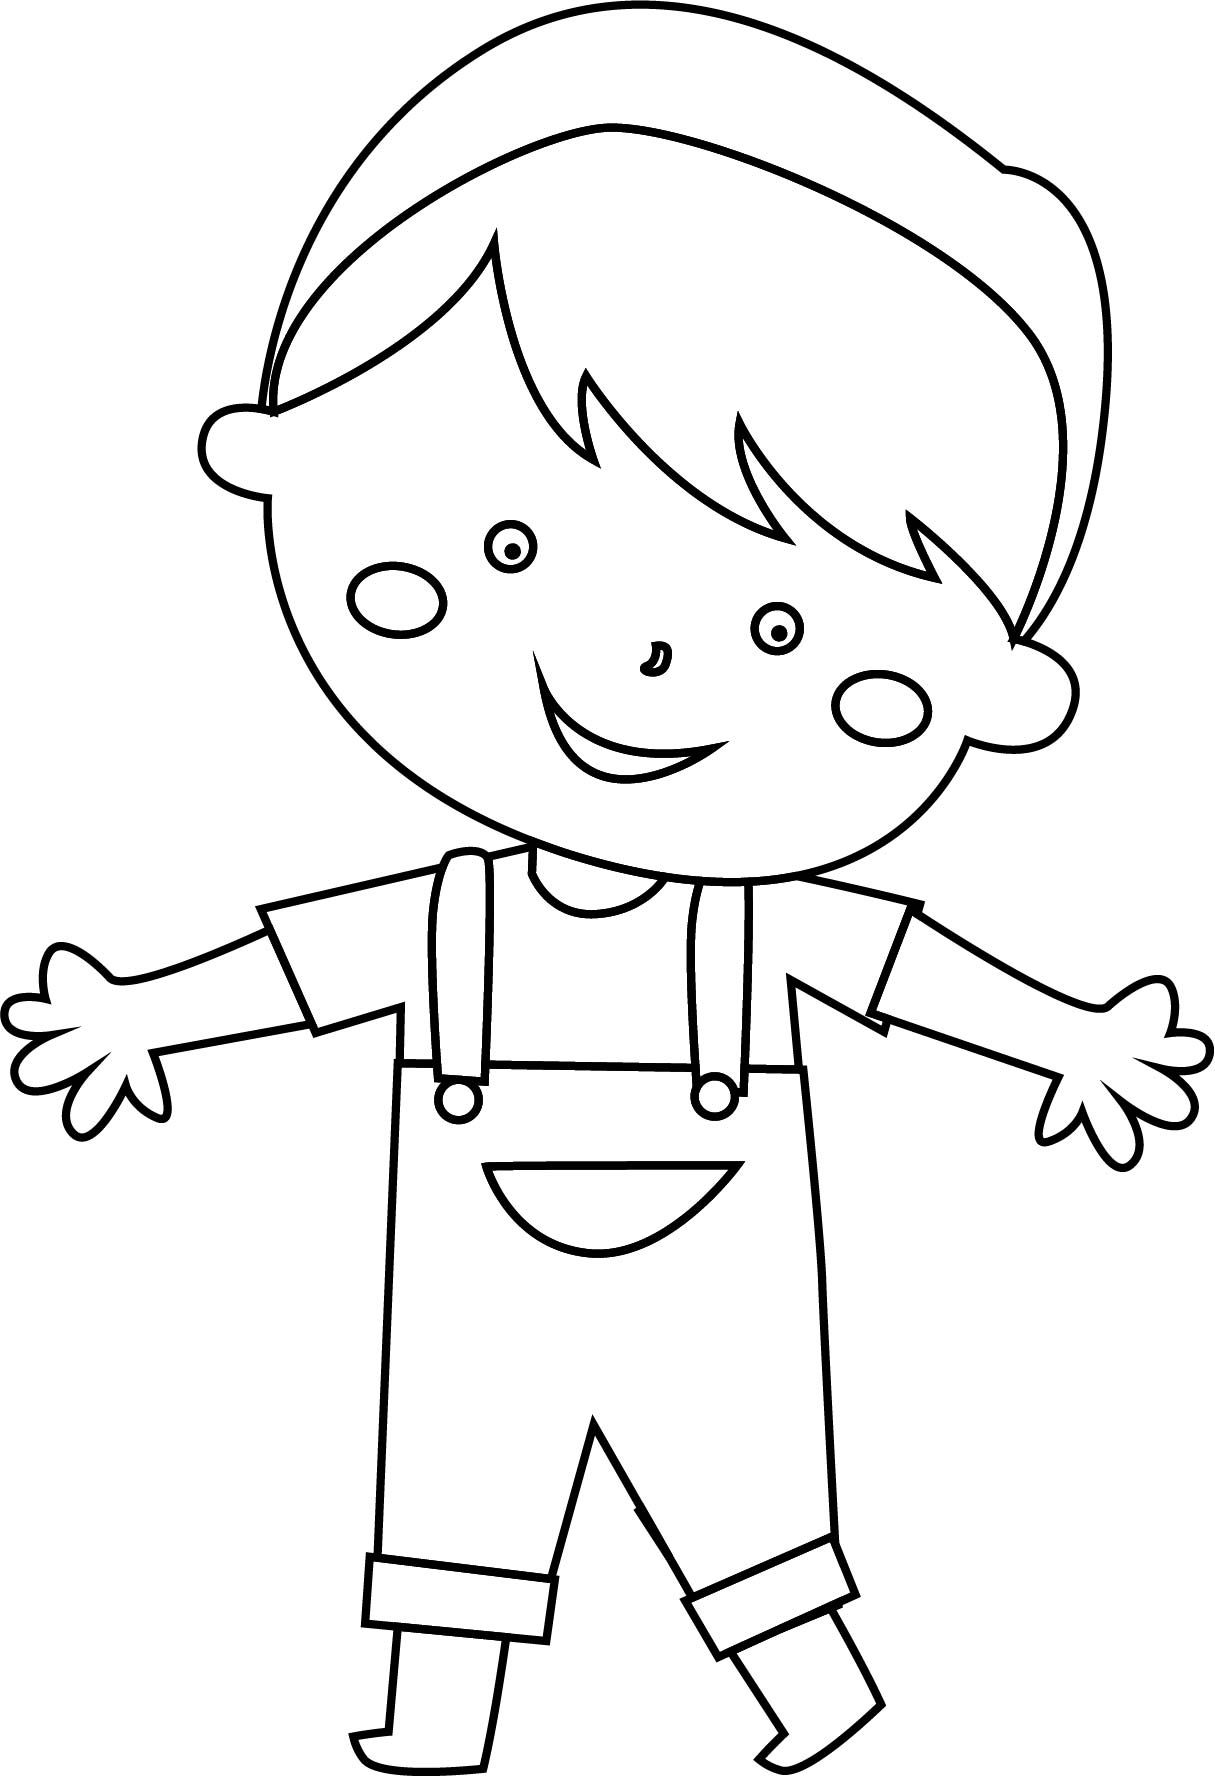 Awesome Sweet Child Boy Coloring Page Coloring Pages For Boys Coloring Pages Cartoon Kids